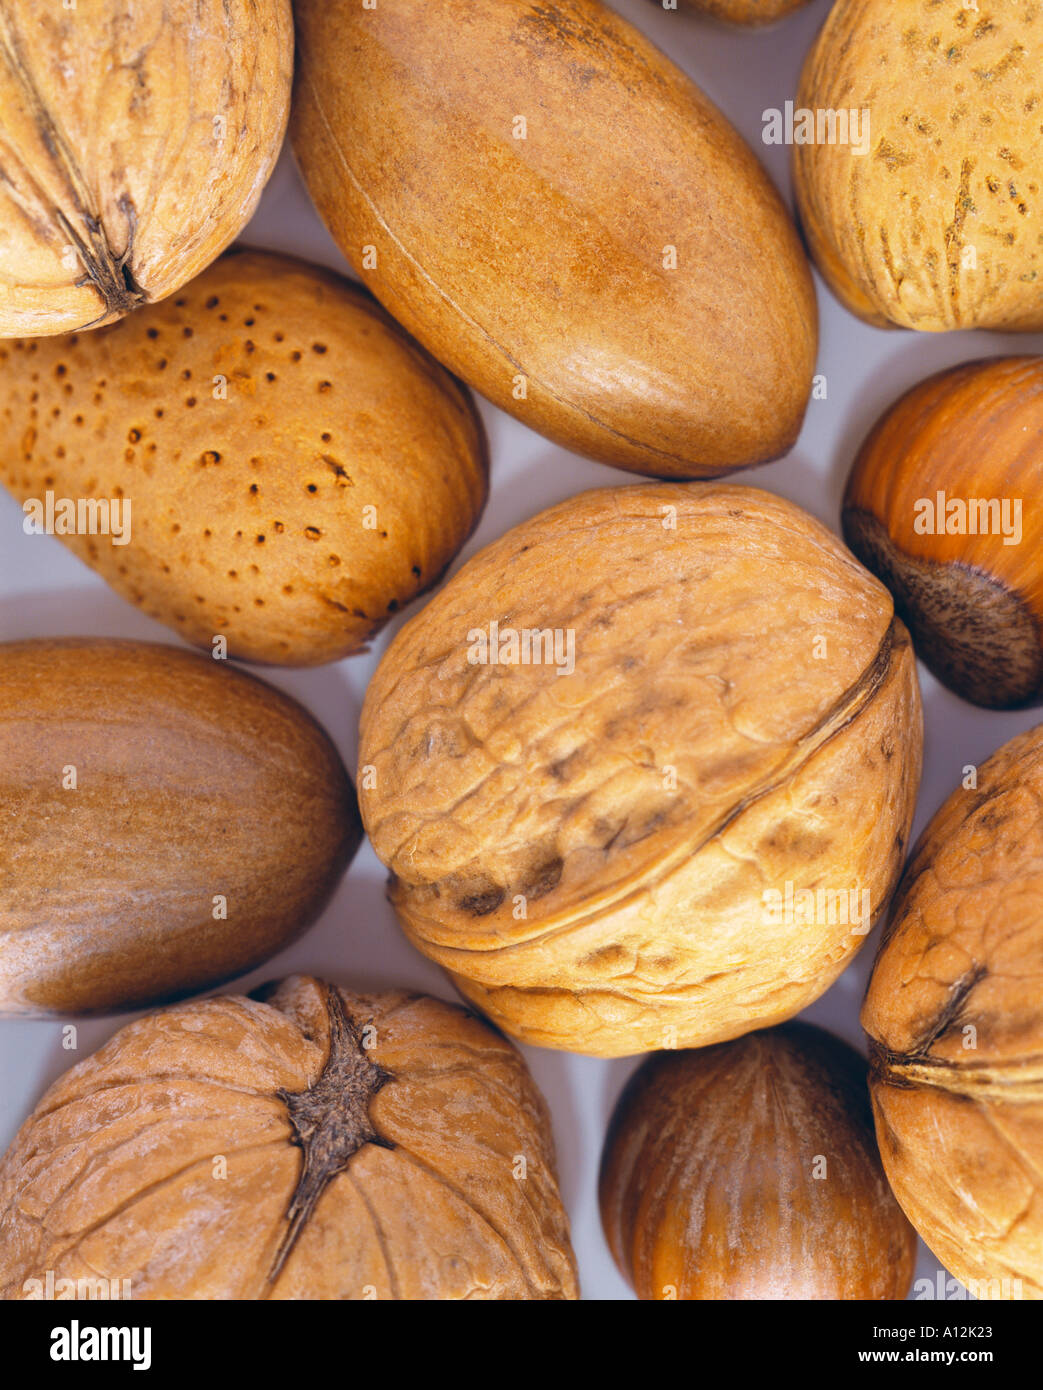 mixed shelled nuts - Stock Image